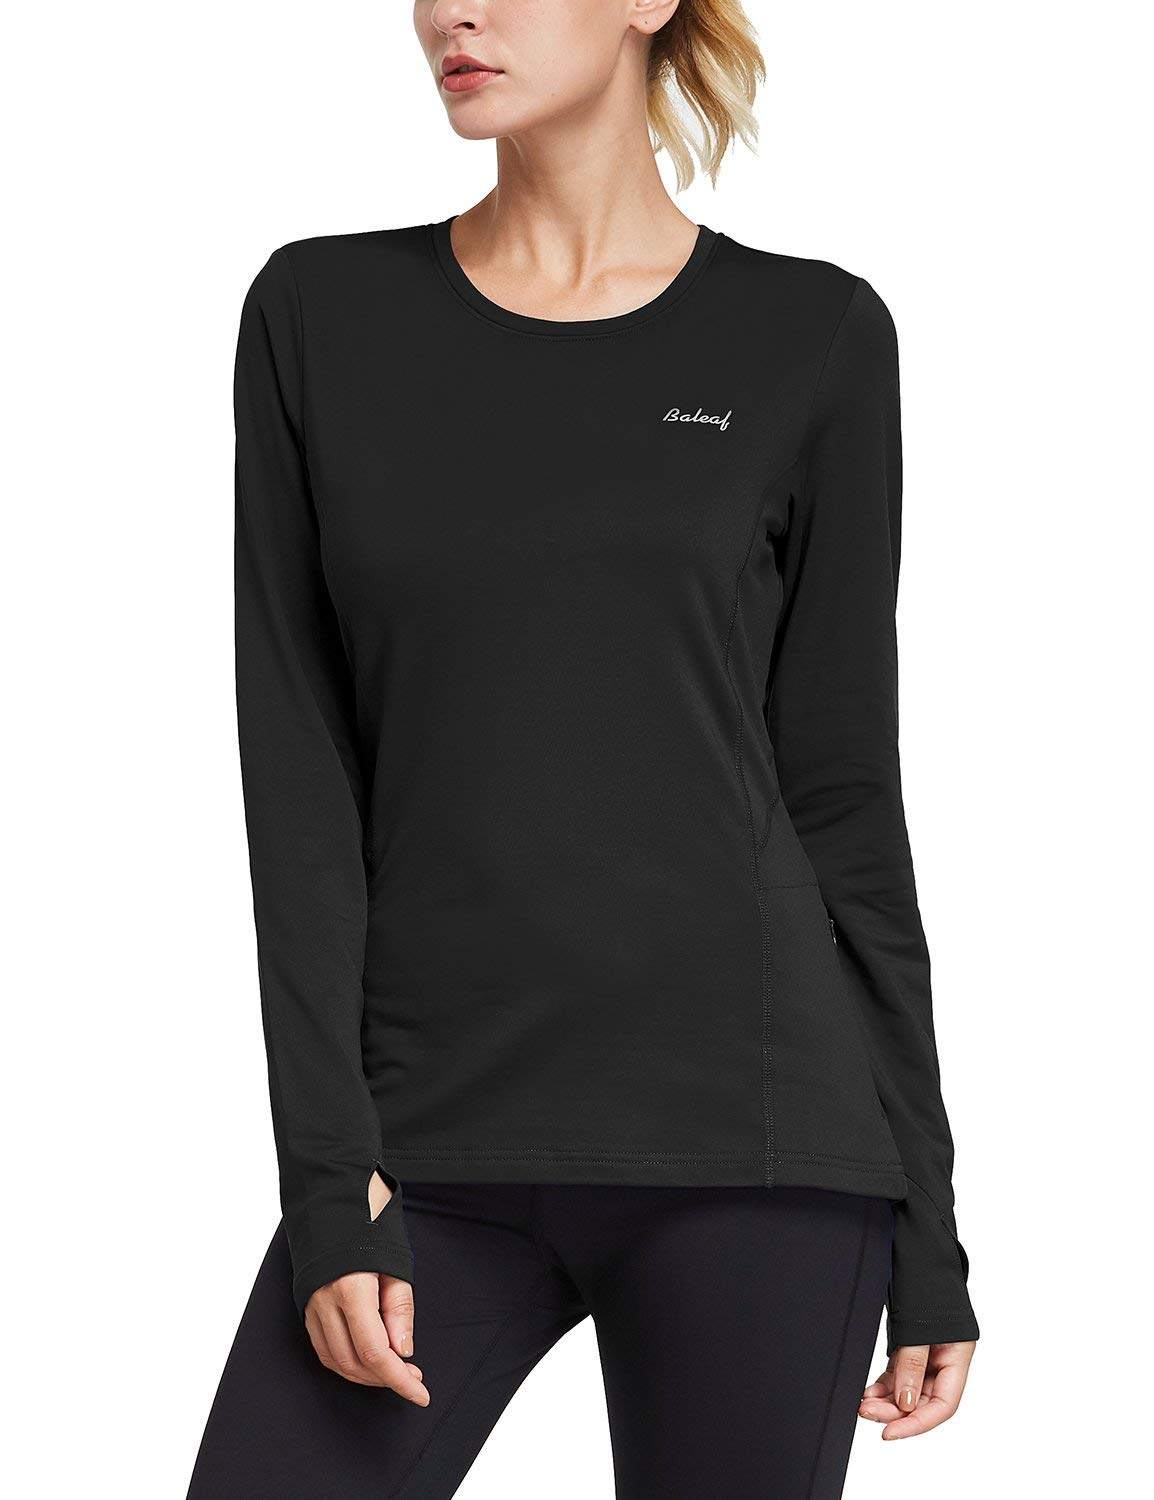 BALEAF Women's Thermal Fleece Tops Long Sleeve Running Shirt with Thumbholes Zipper Pocket Black Size XXL by BALEAF